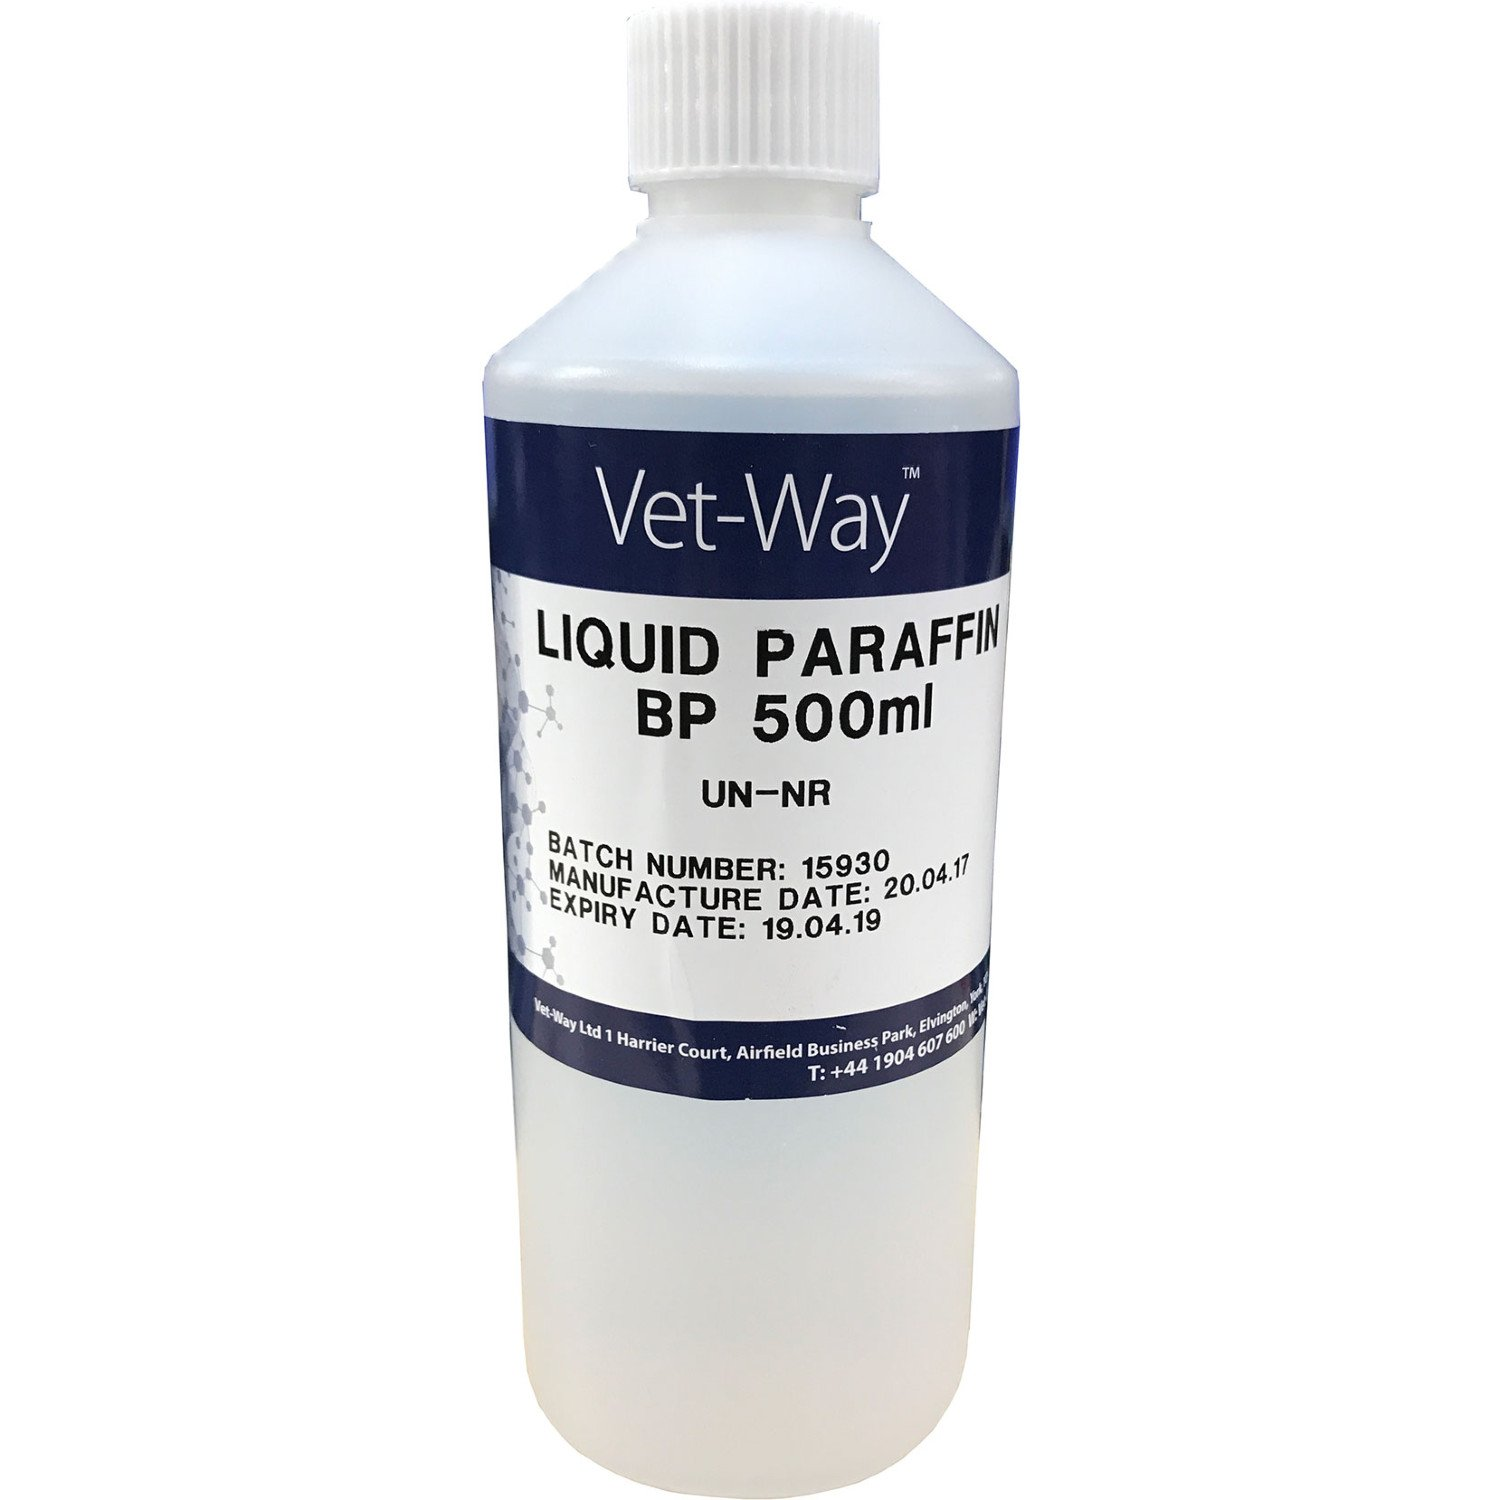 Vet Way Liquid Paraffin 500ml Horse First Aid Pack of 20 Clear by Vet Way (Image #1)